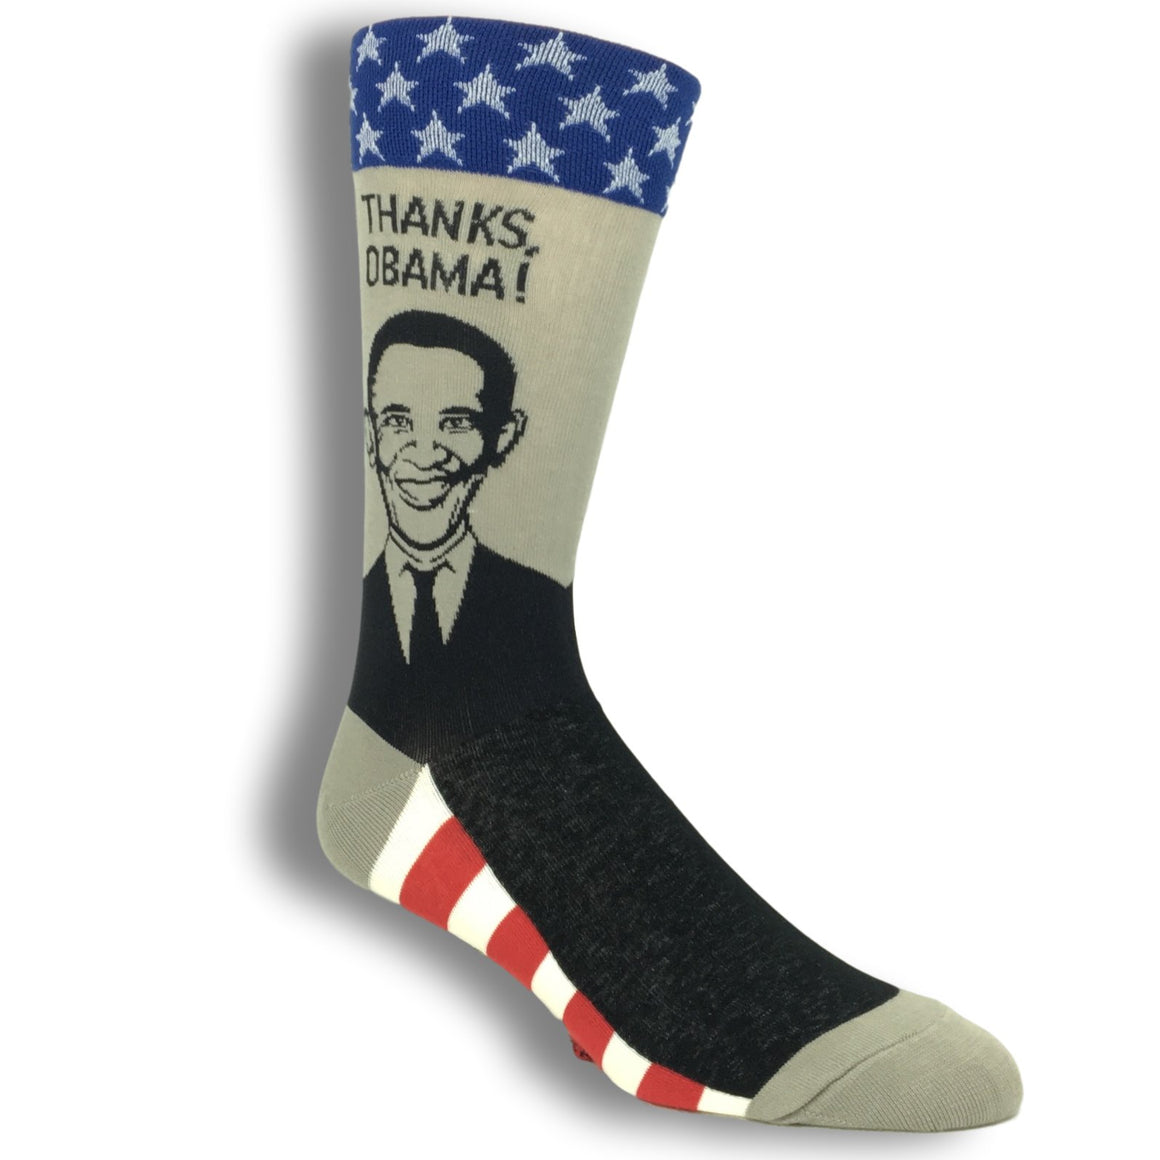 Thanks Obama Socks by Foot Traffic - The Sock Spot